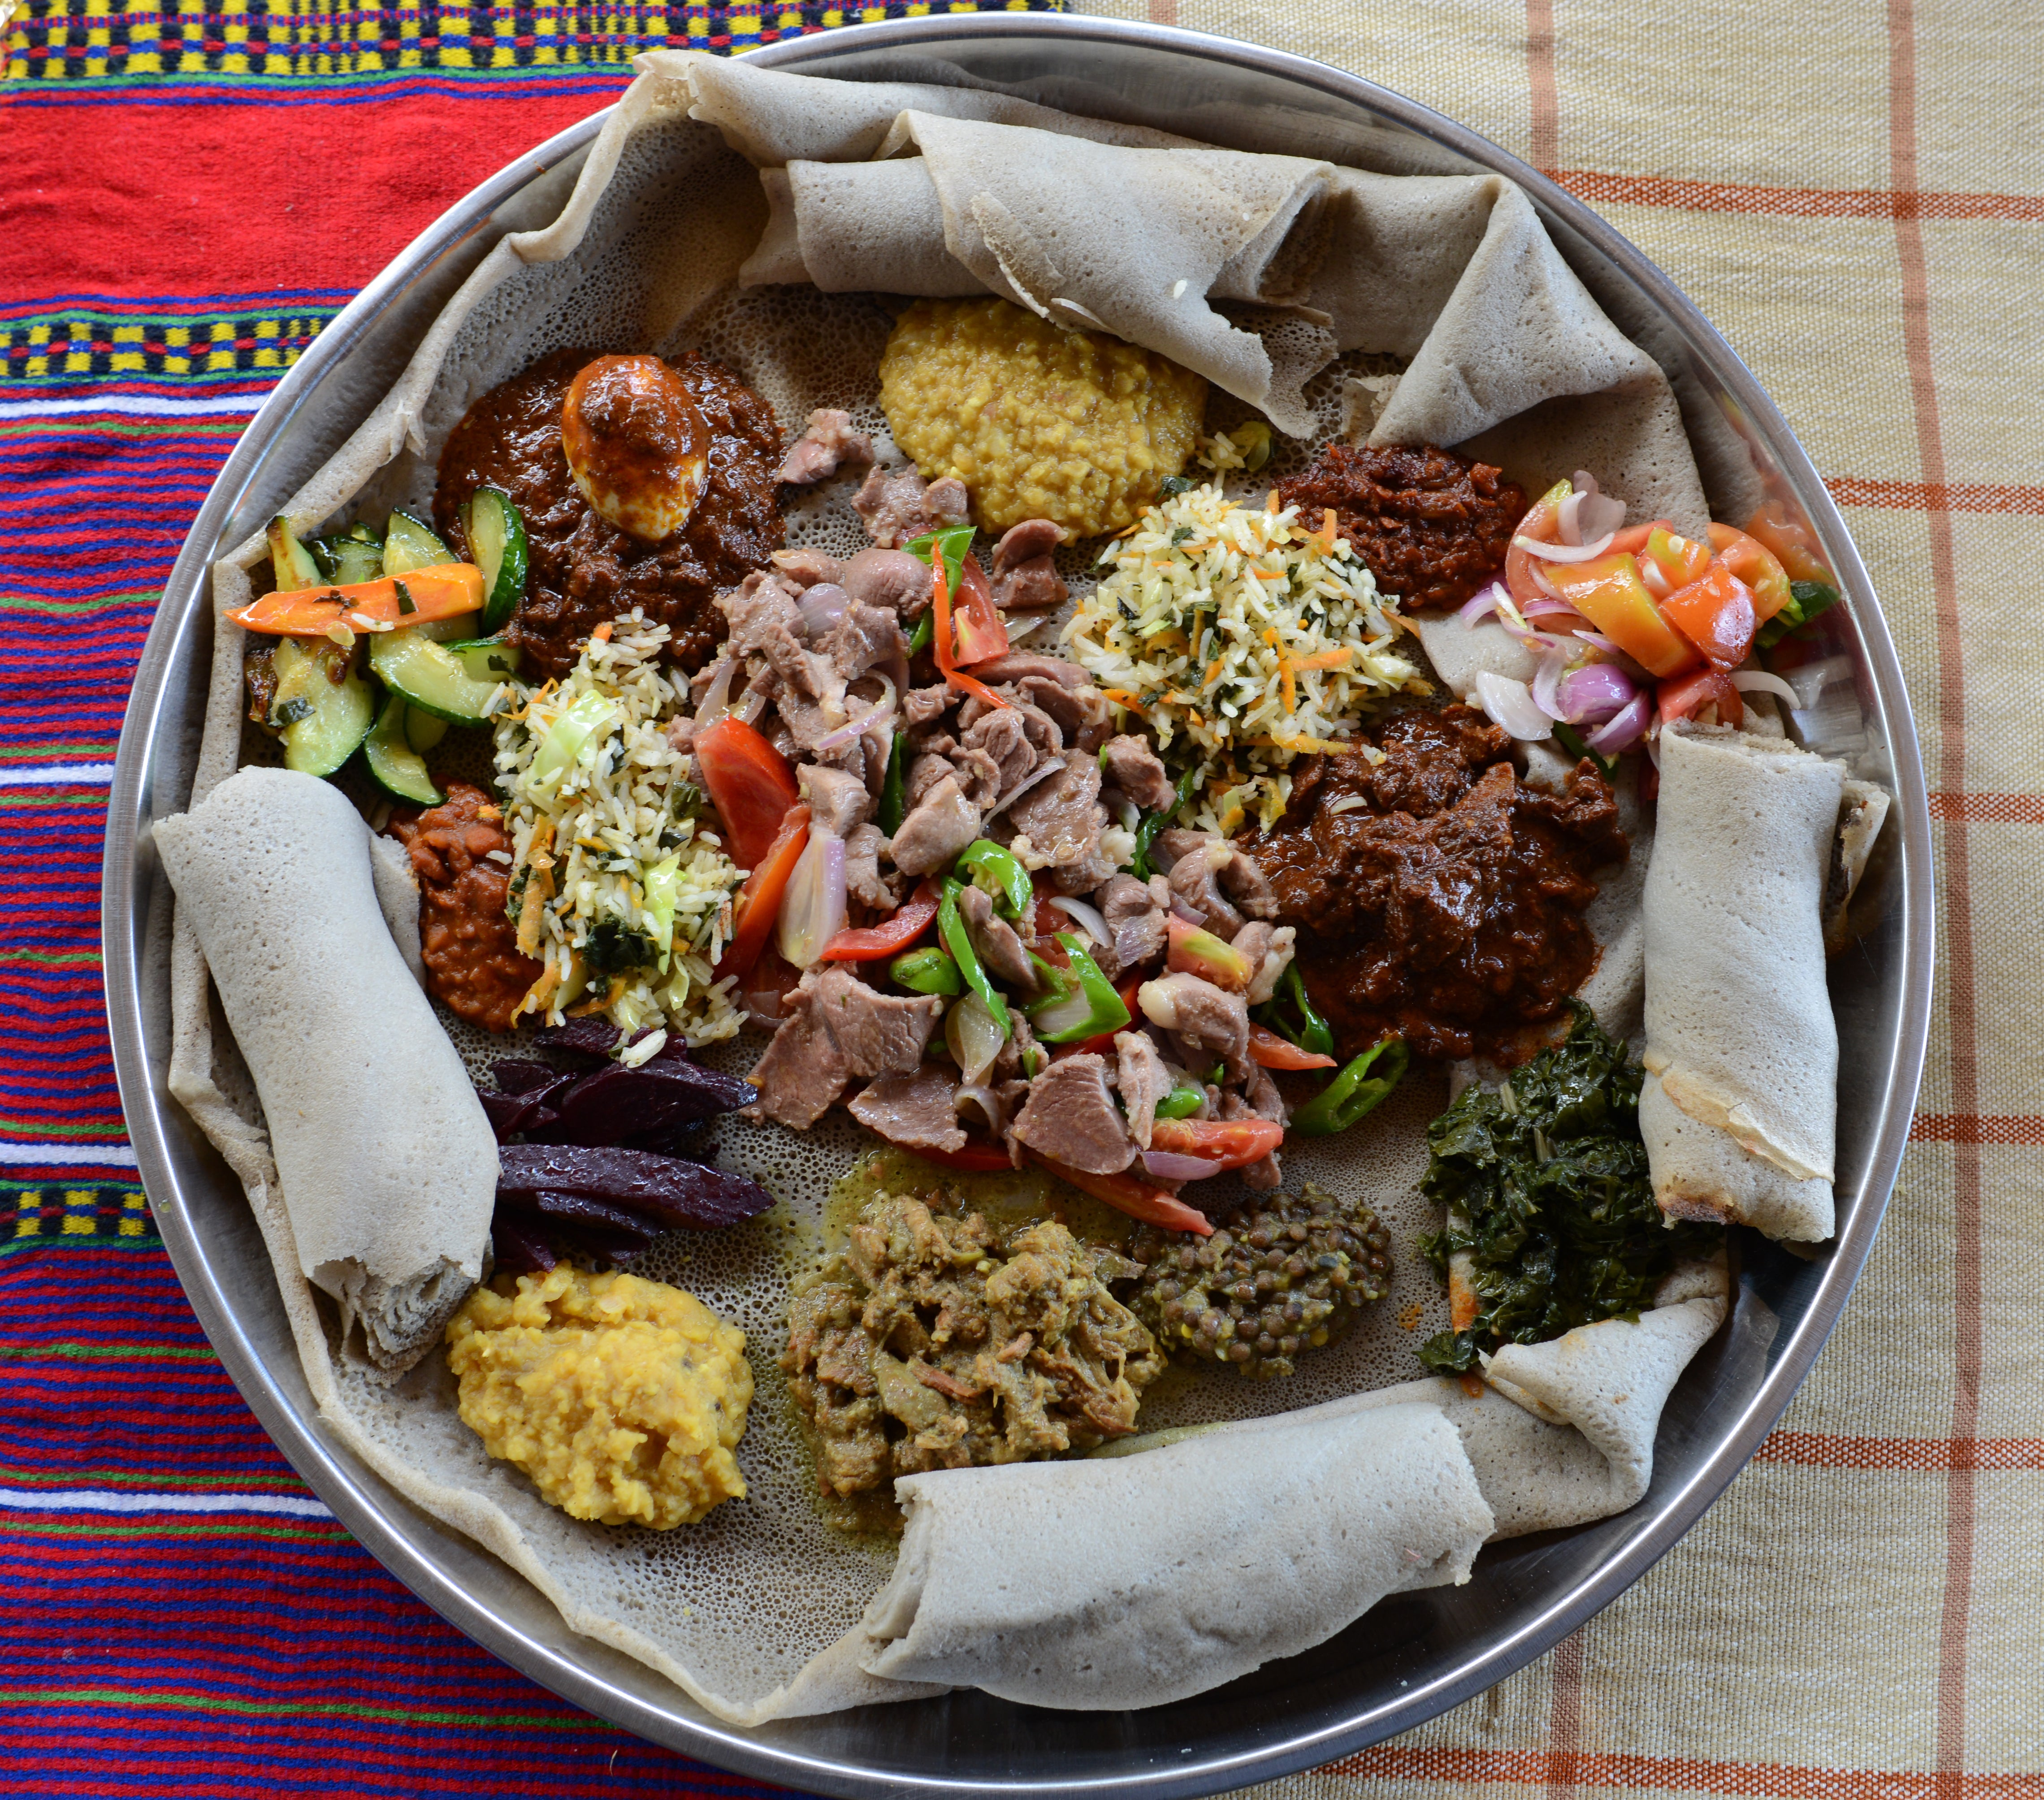 New York's First African Food Festival Brings the Diversity of the Continent to Your Plate